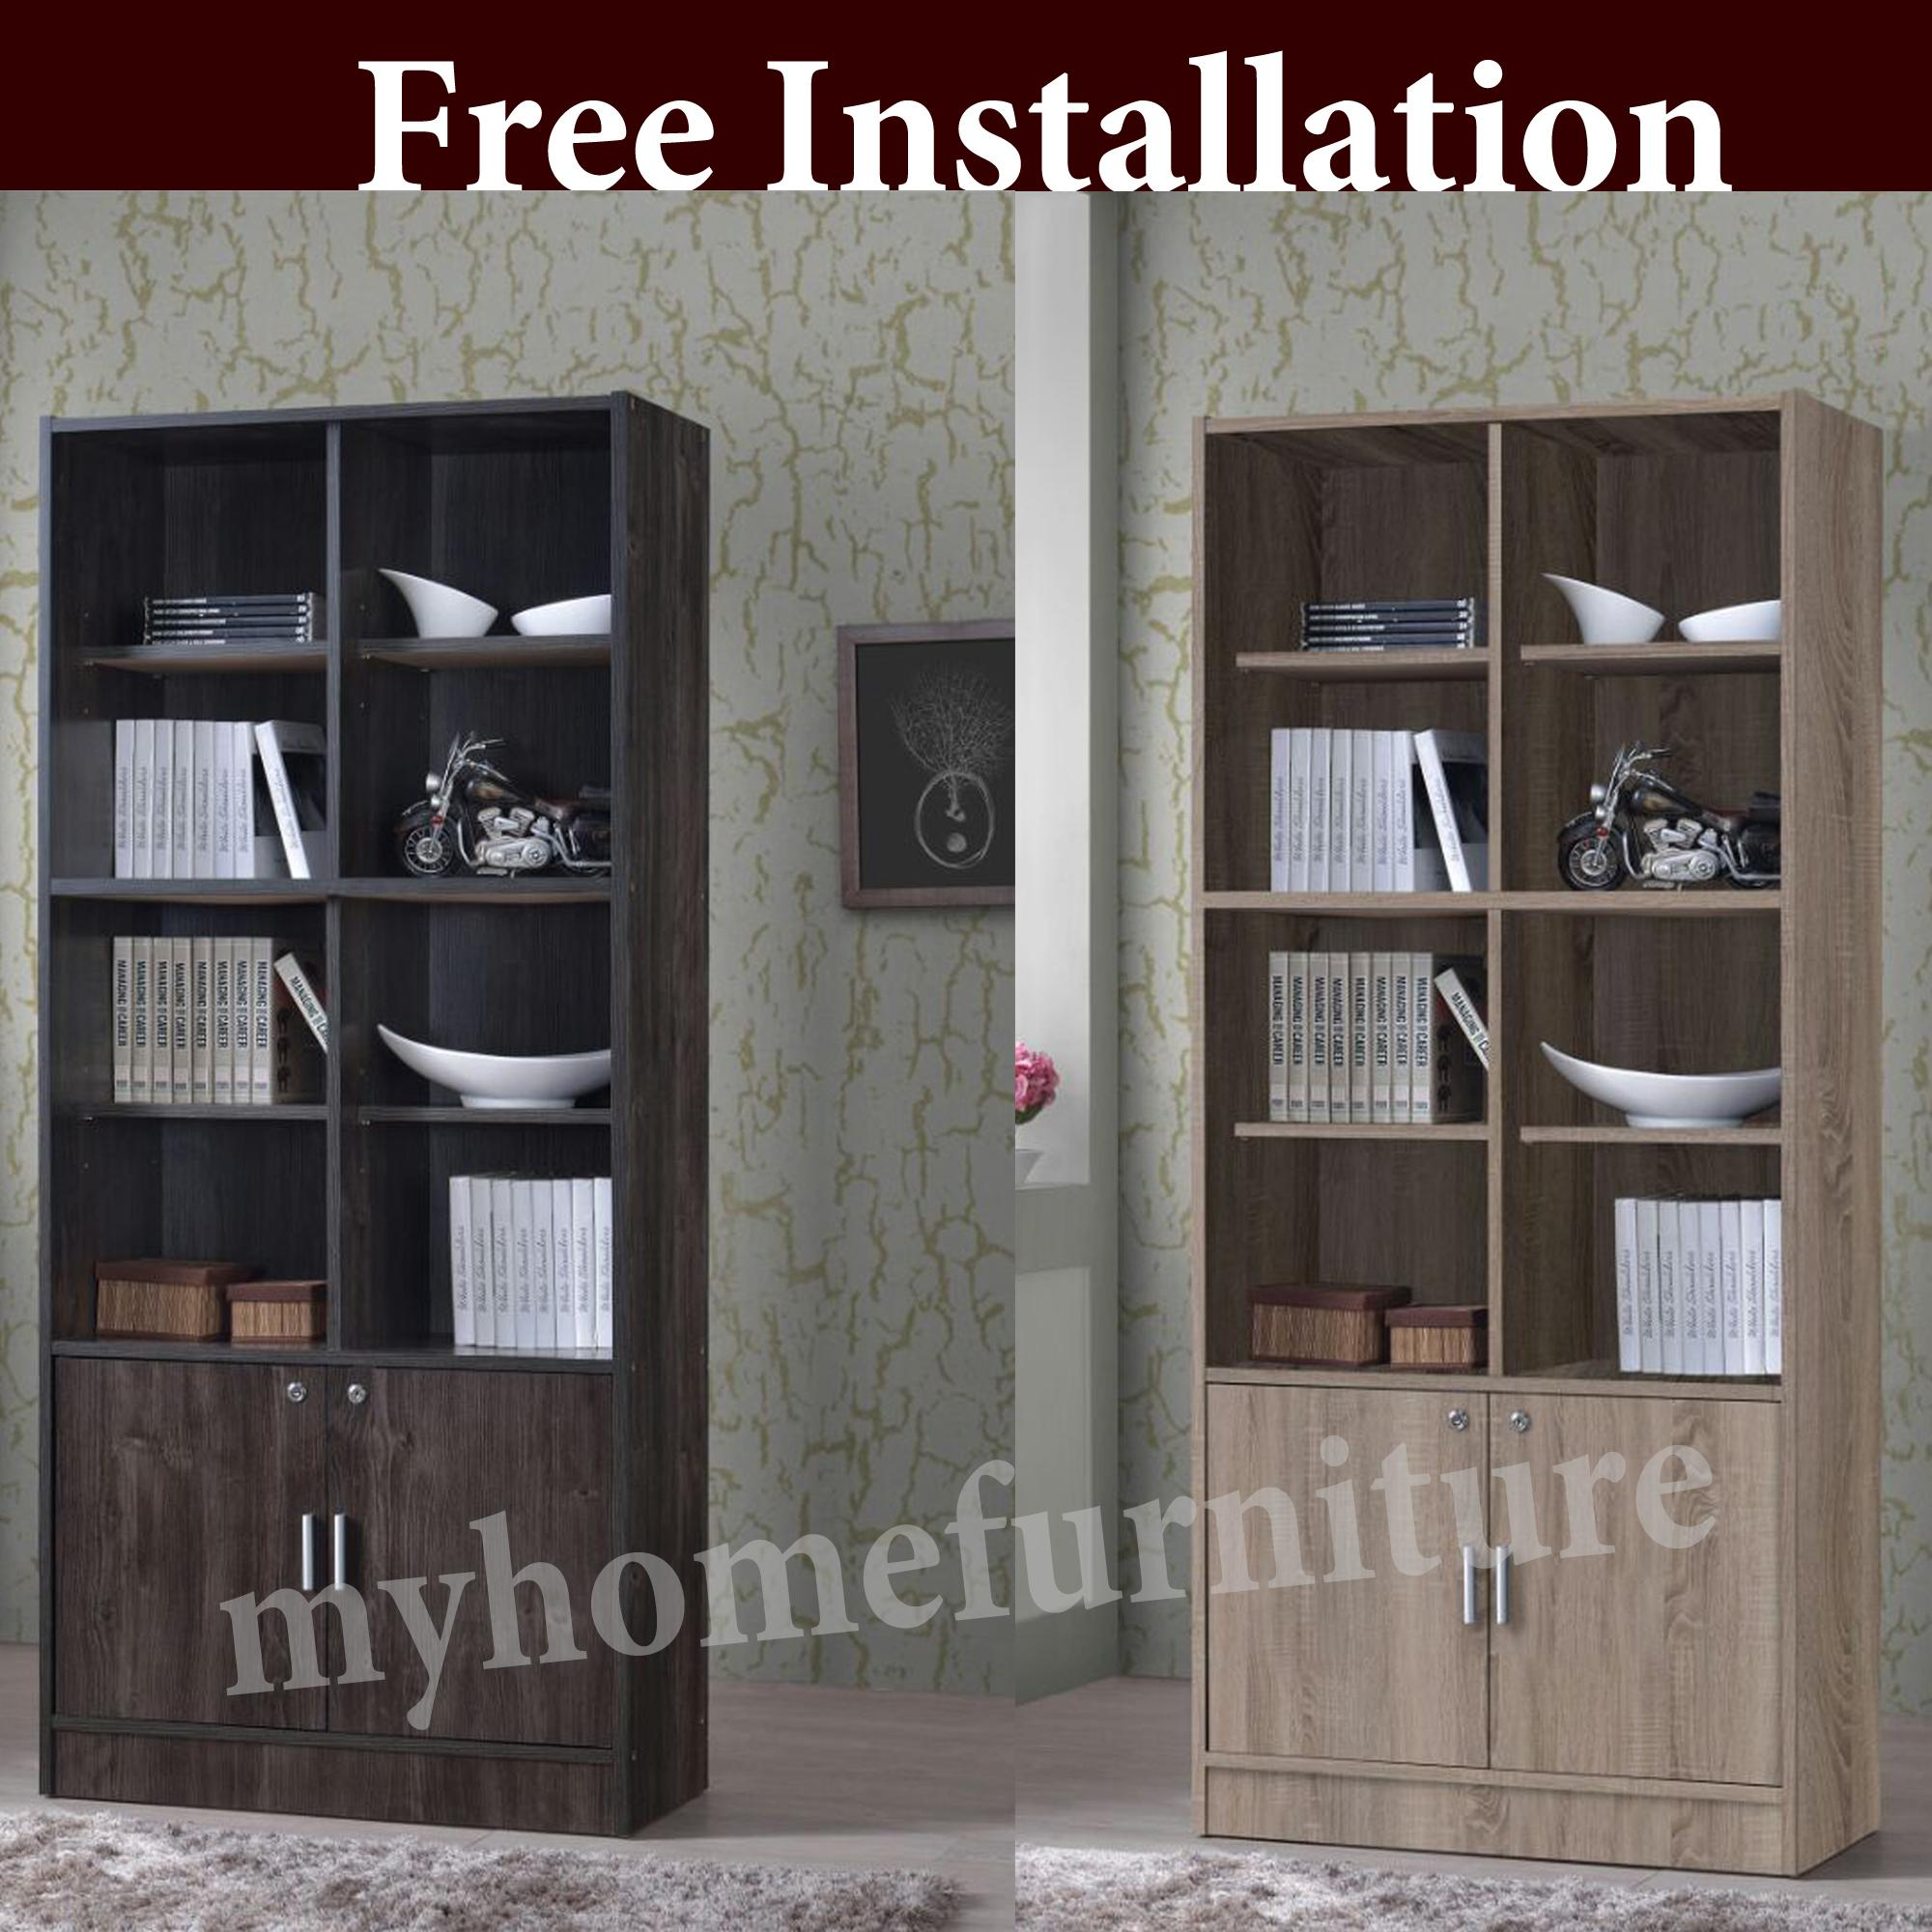 Hugh Bookshelf / Display Cabinet / Divider / Cabinet / Filling Cabinet (Free Installation)